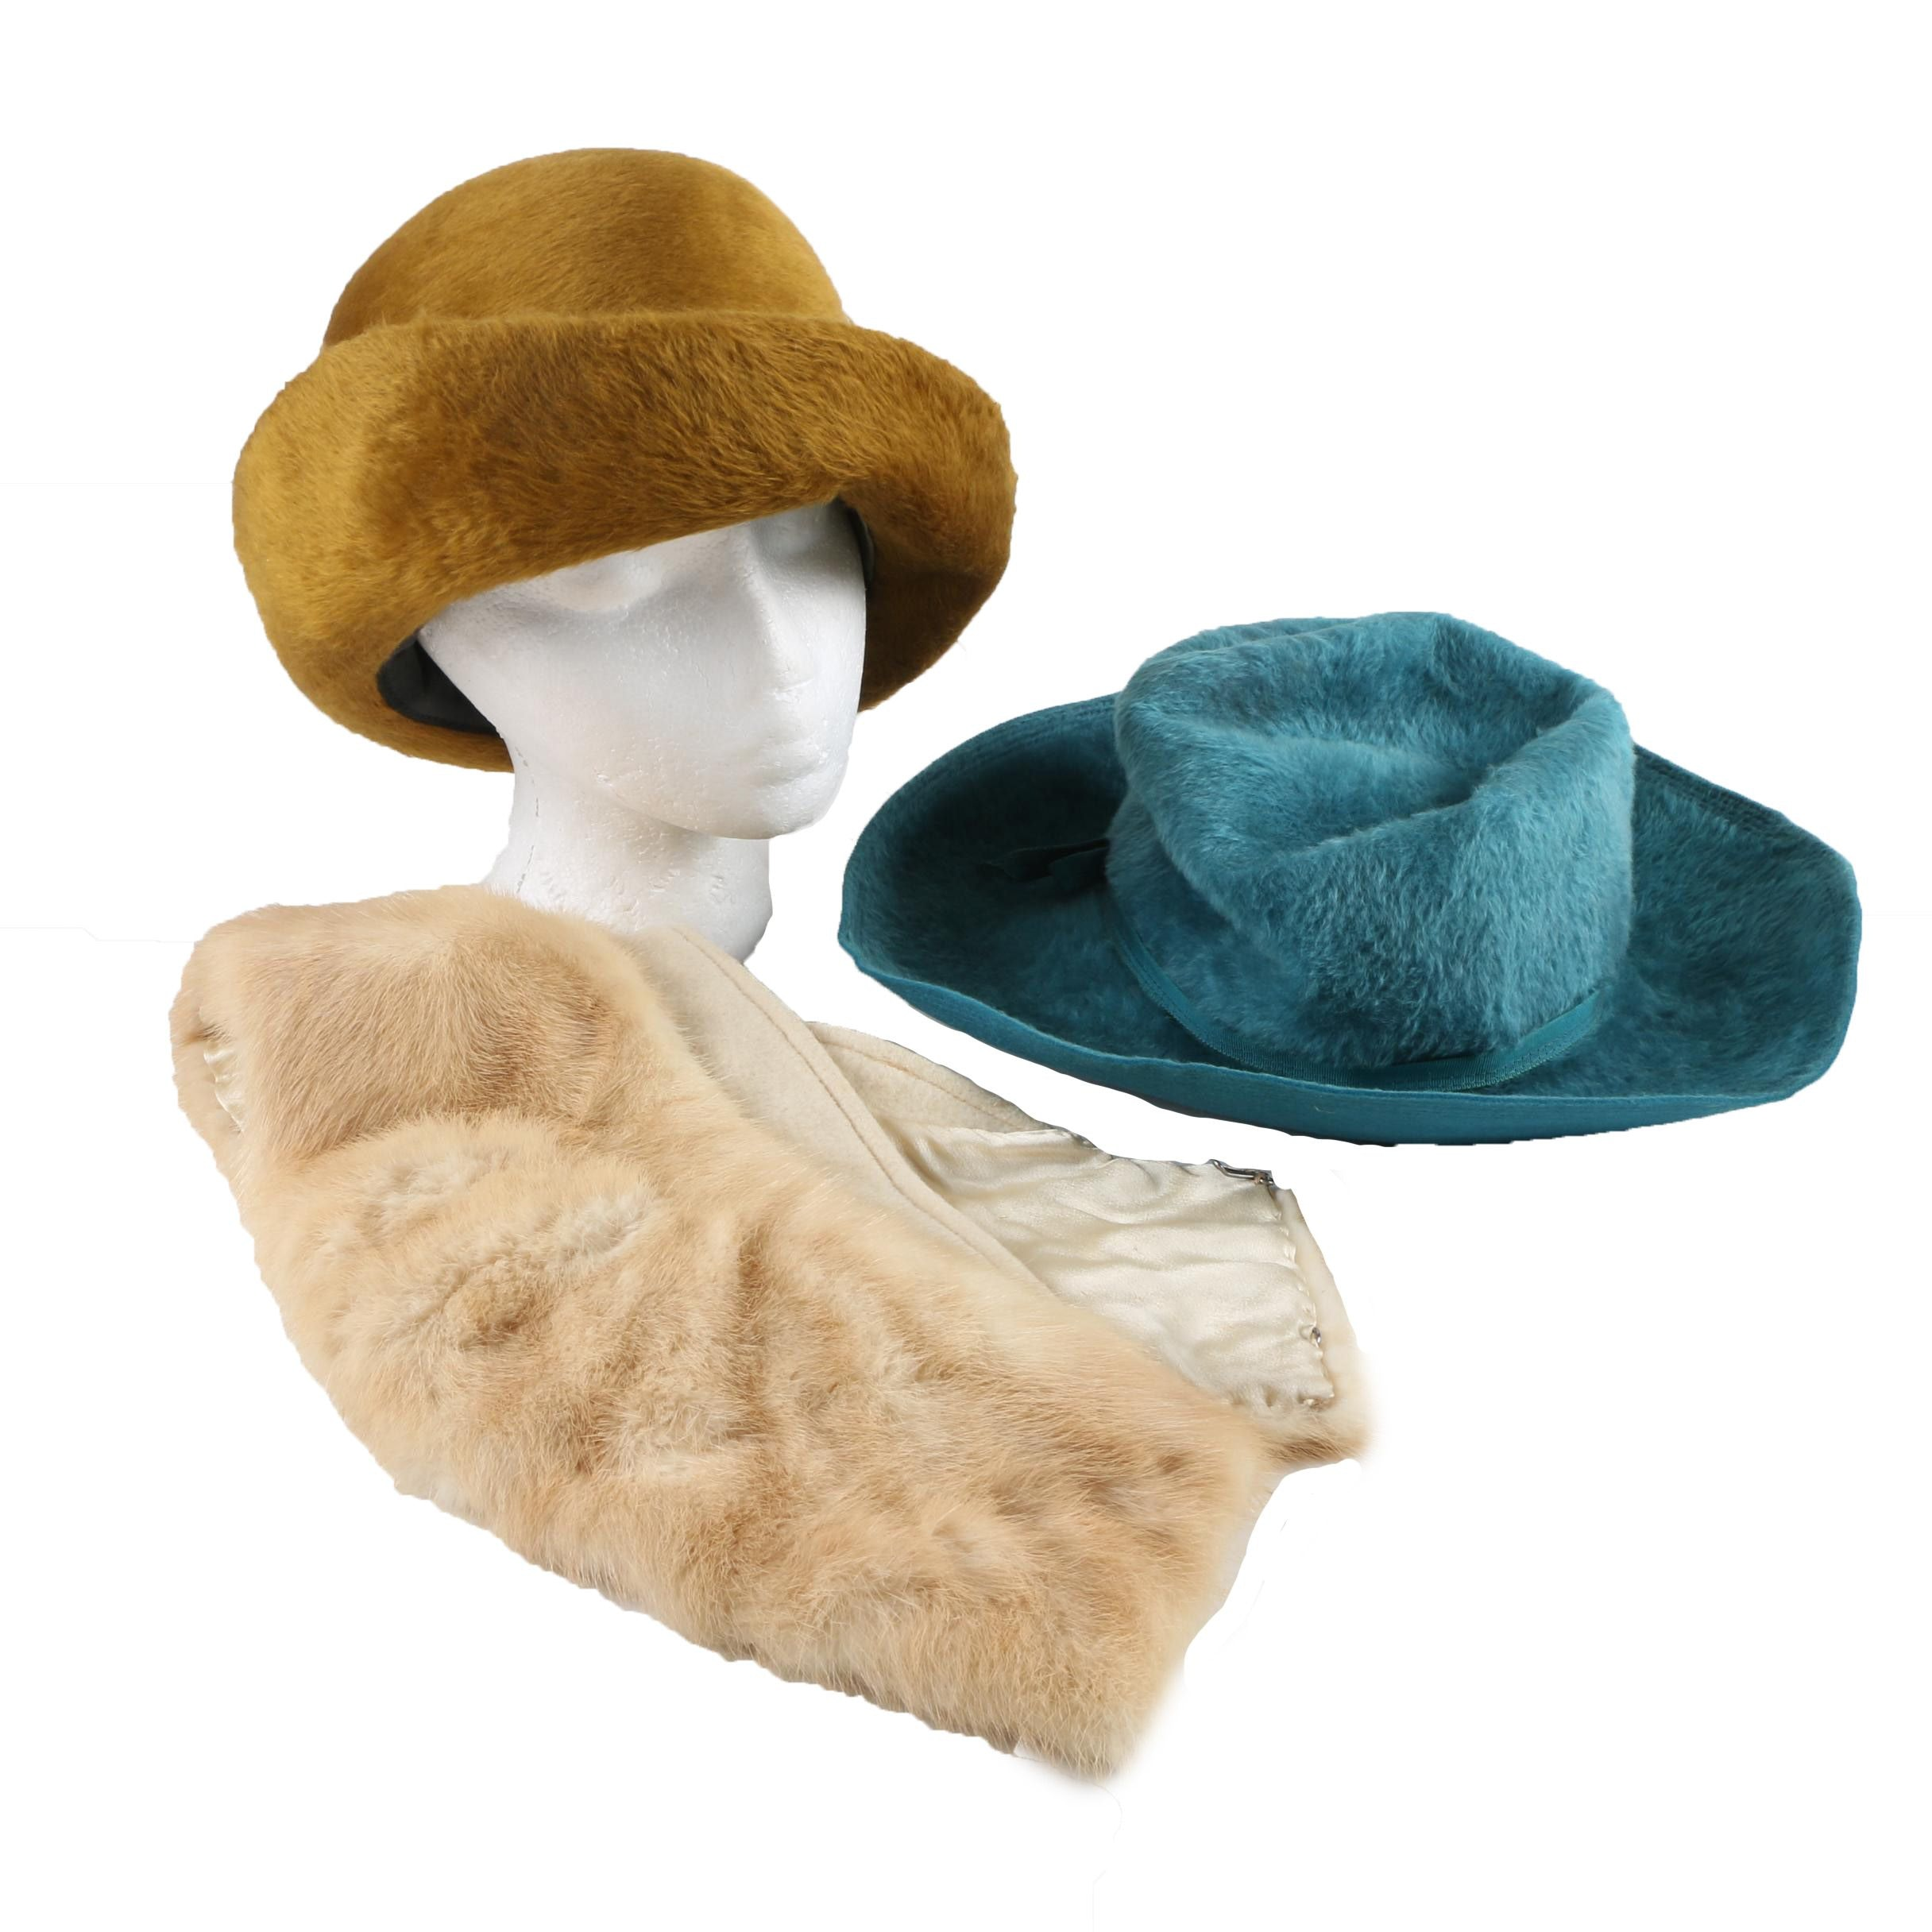 Vintage Fur Felt Hats by Betmar and Coralie with Blonde Mink Fur Collar